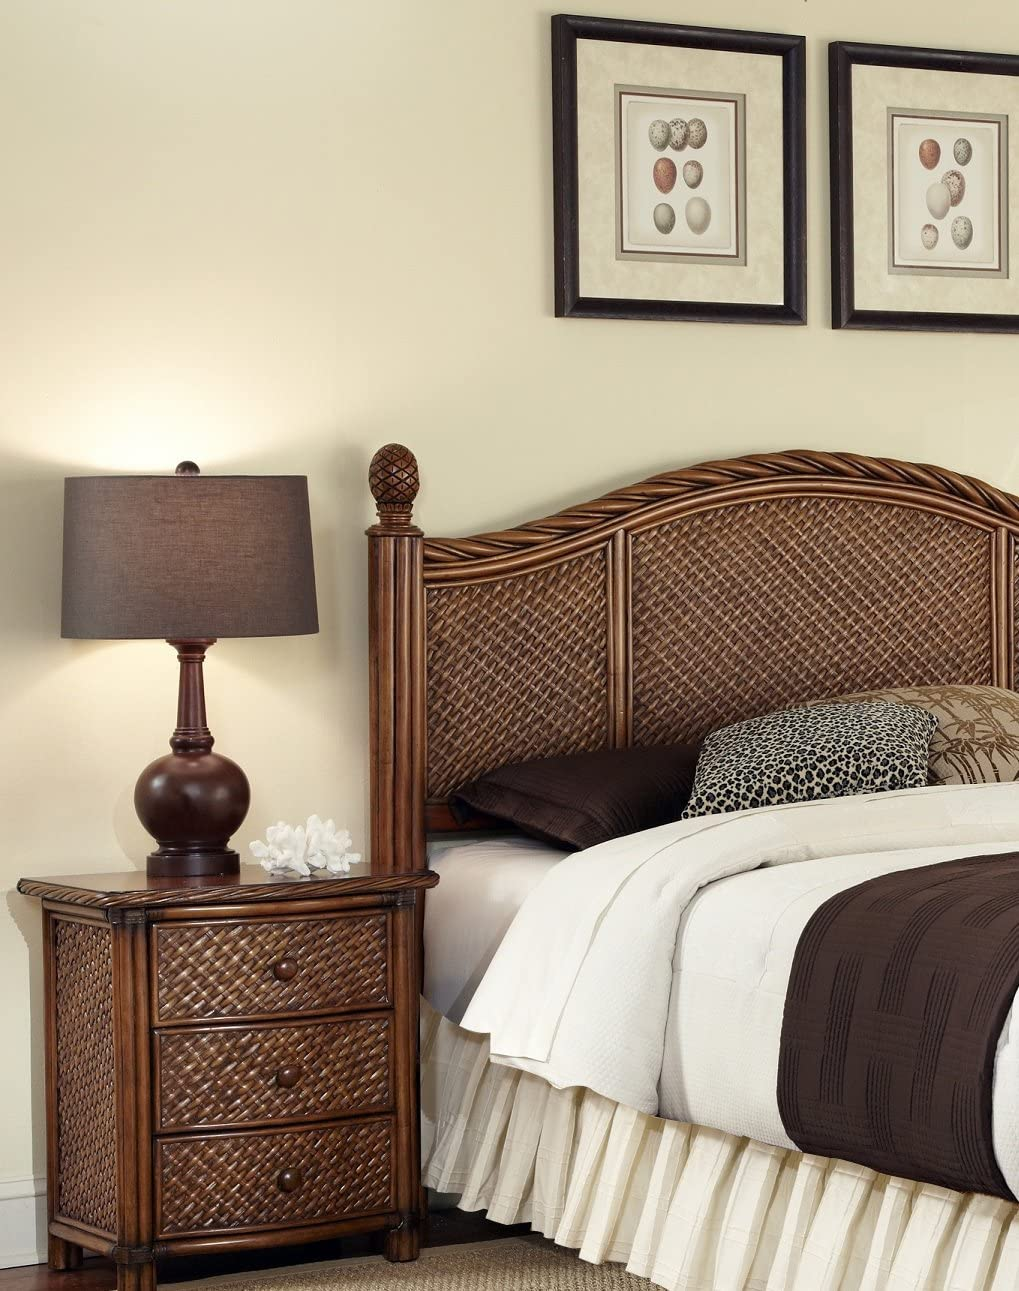 Marco Island Cinnamon Queen Full Headboard Night Stand by Home Styles